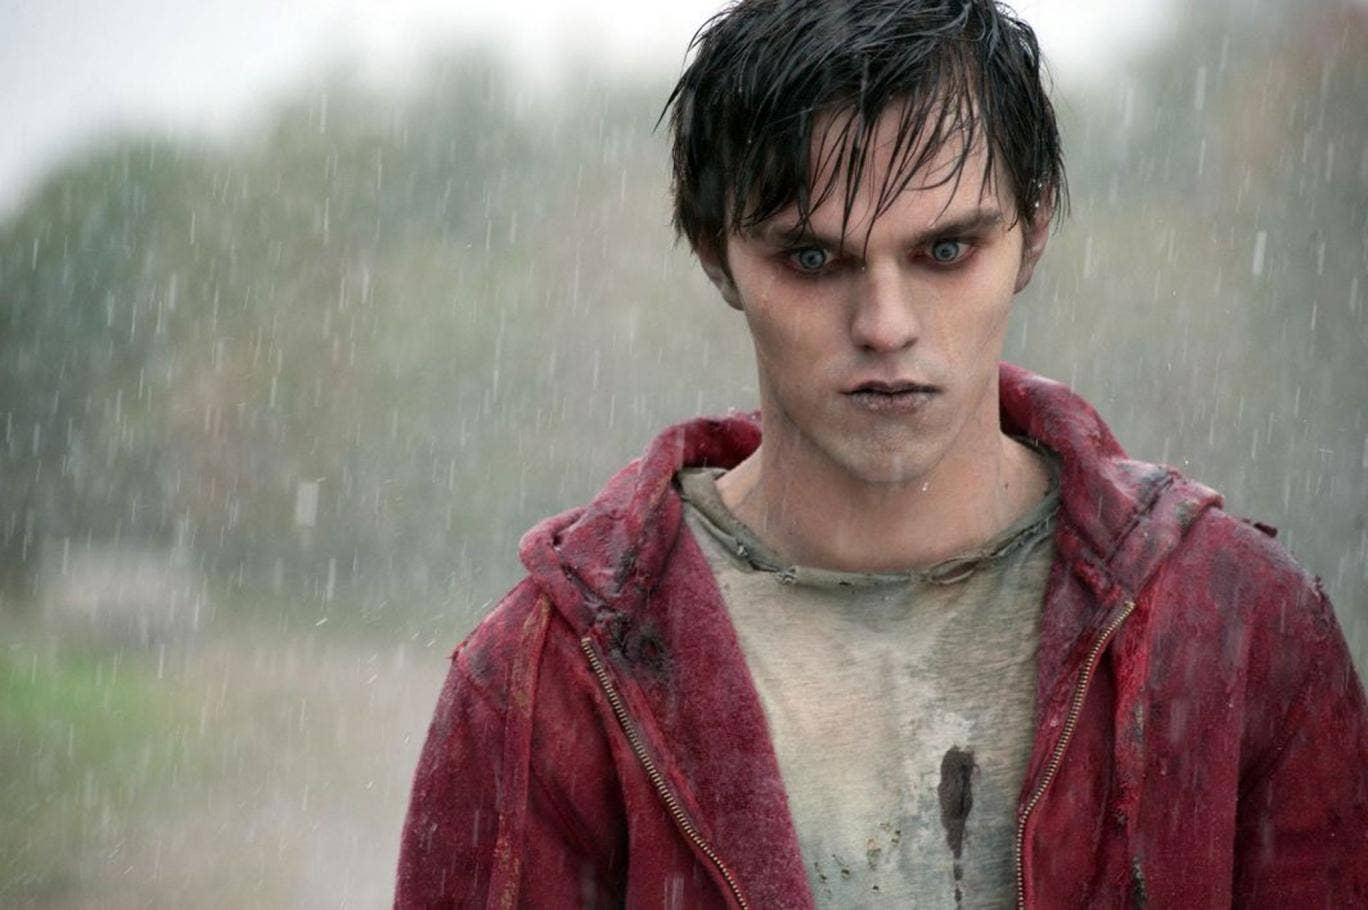 Nicholas Hoult is attracting more interest than many ISAs in the zombie movie Warm Bodies